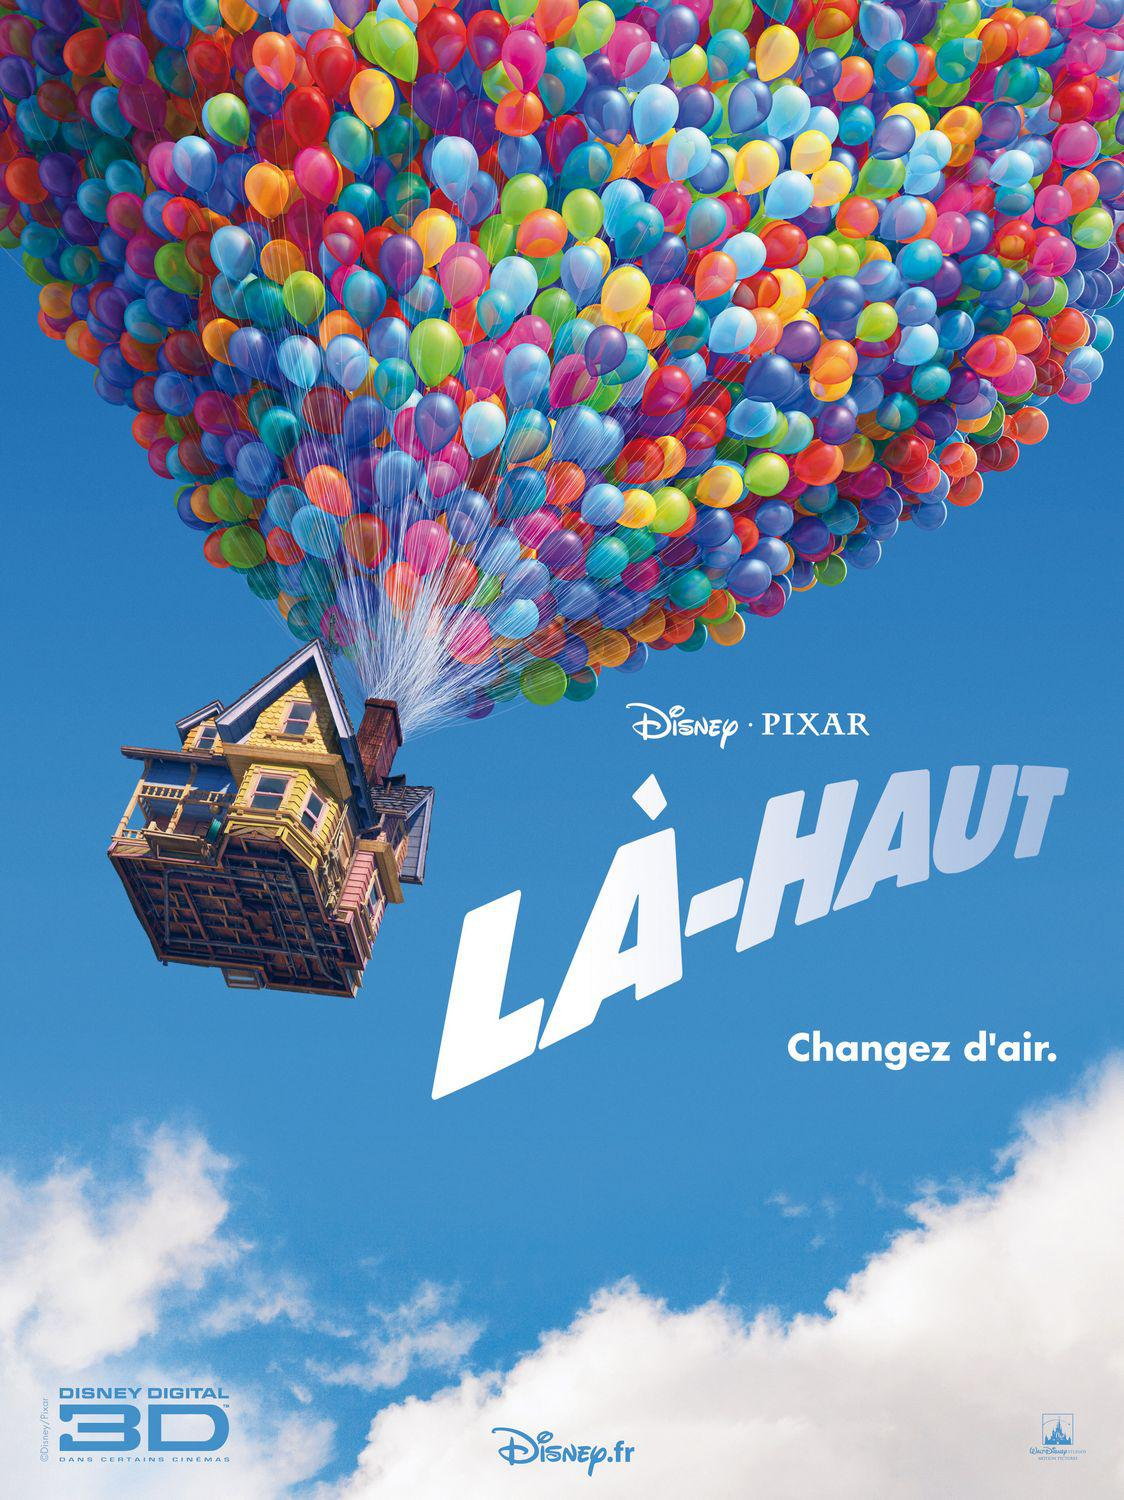 UP - Disney Pixar animated film poster - house  - Là Haut